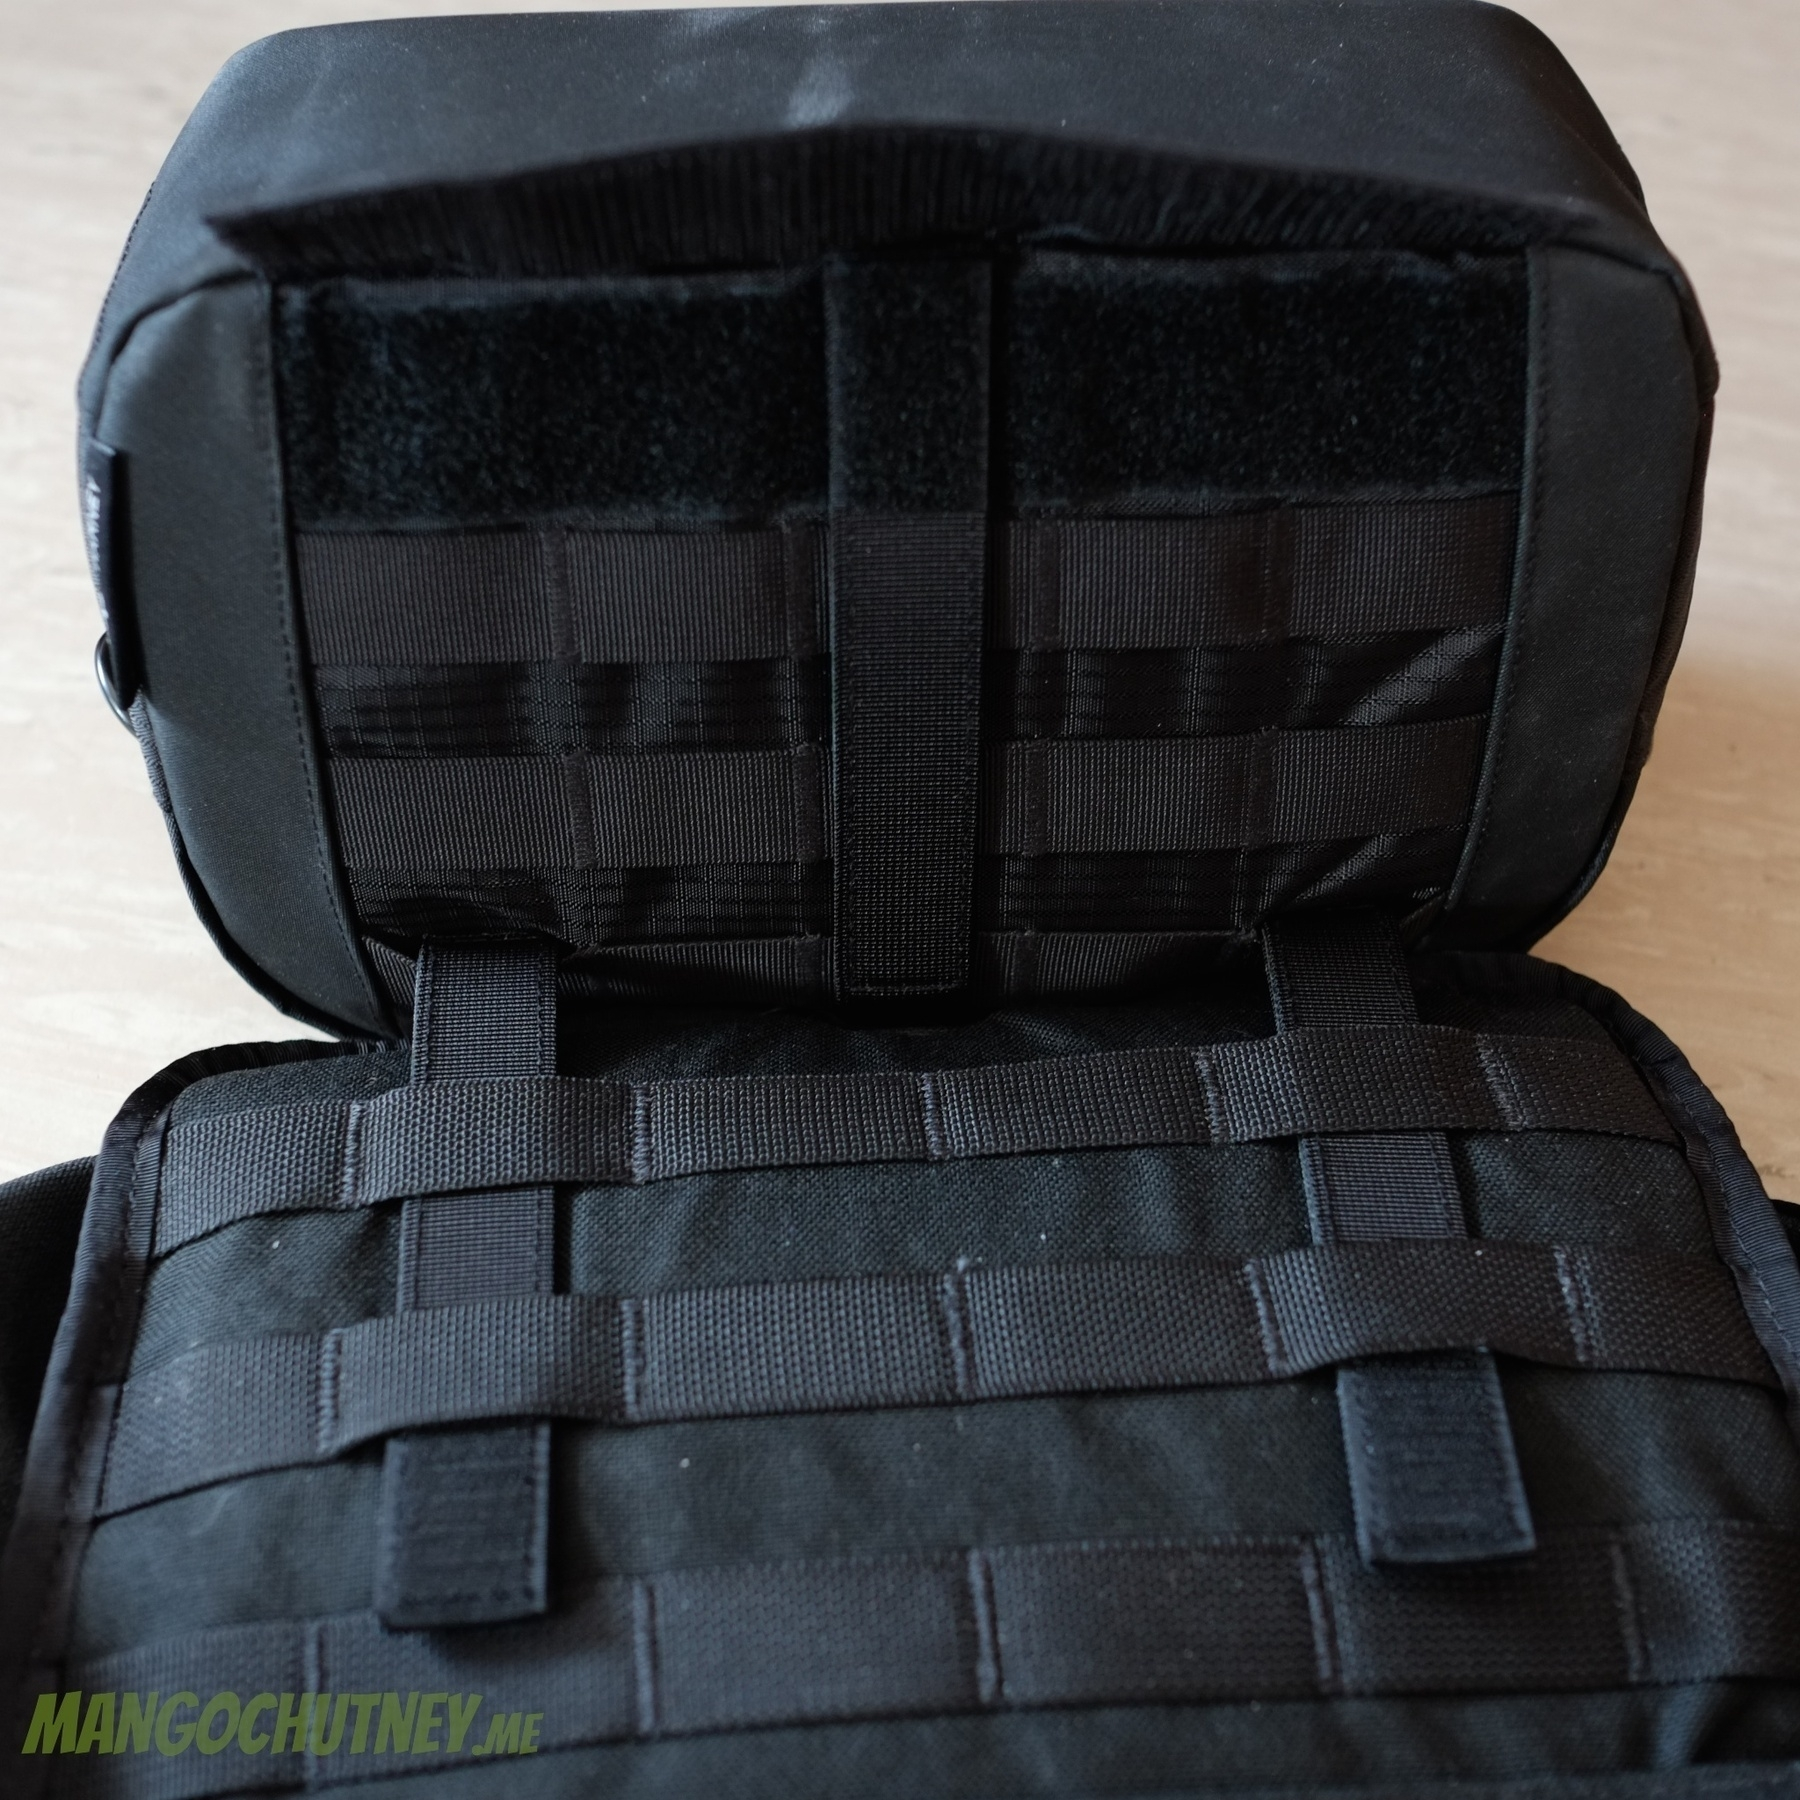 Attaching the f-stop Harney Pouch in the Goruck GR0 1